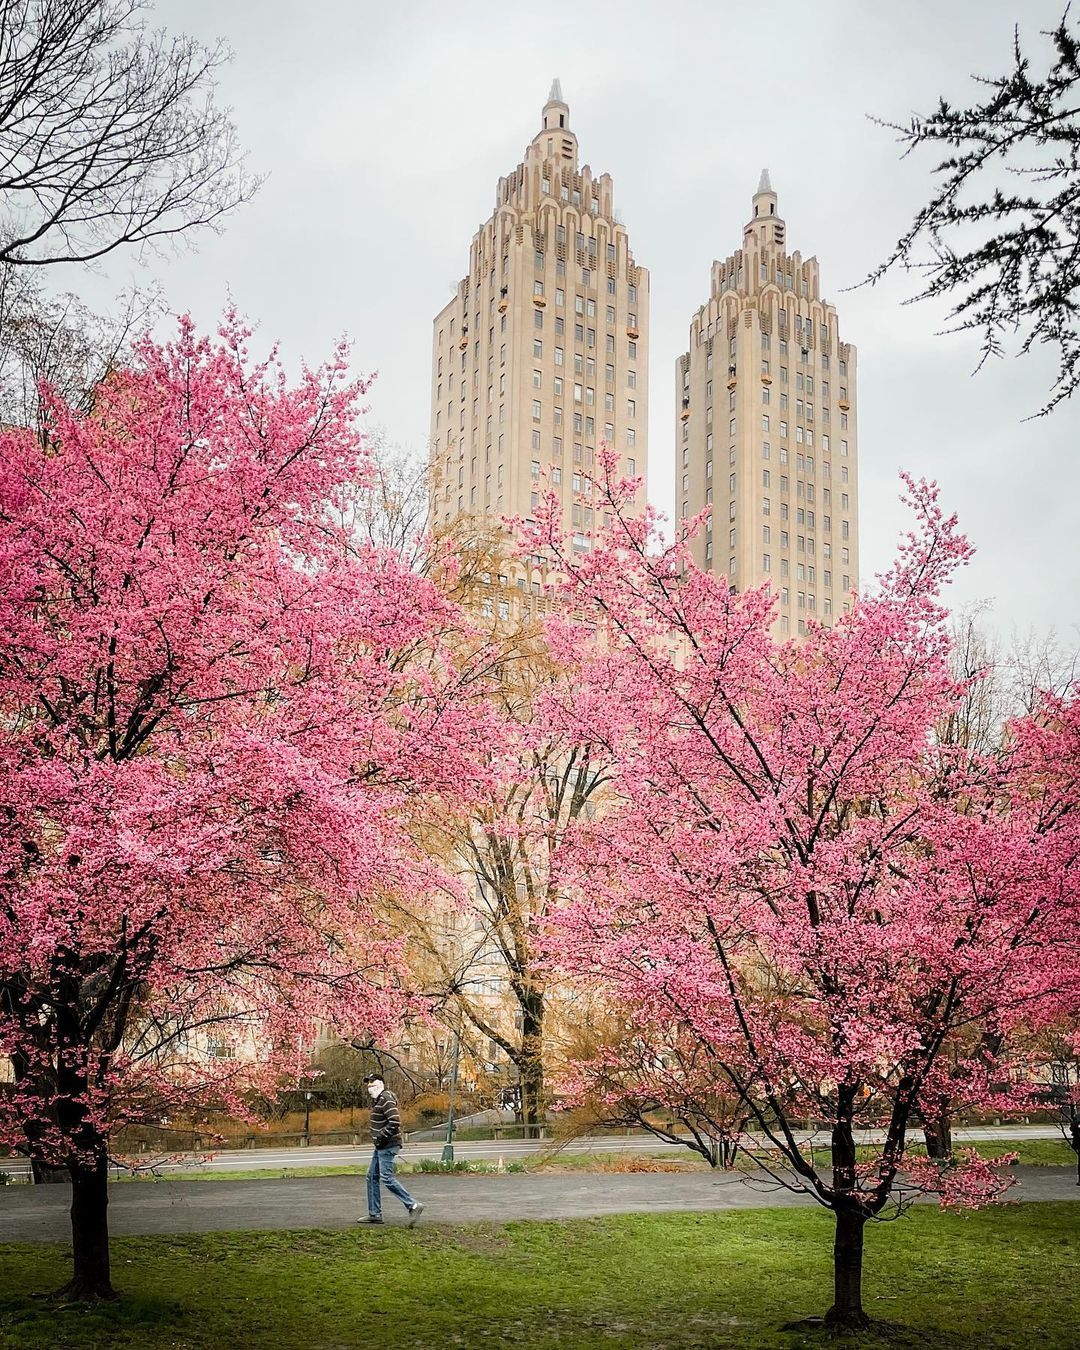 An Uptown Girl On Instagram Bloom Alert March Showers Brought March Flowers West Side Of The Res In 2021 Blossom Trees Cherry Blossom Tree Instagram